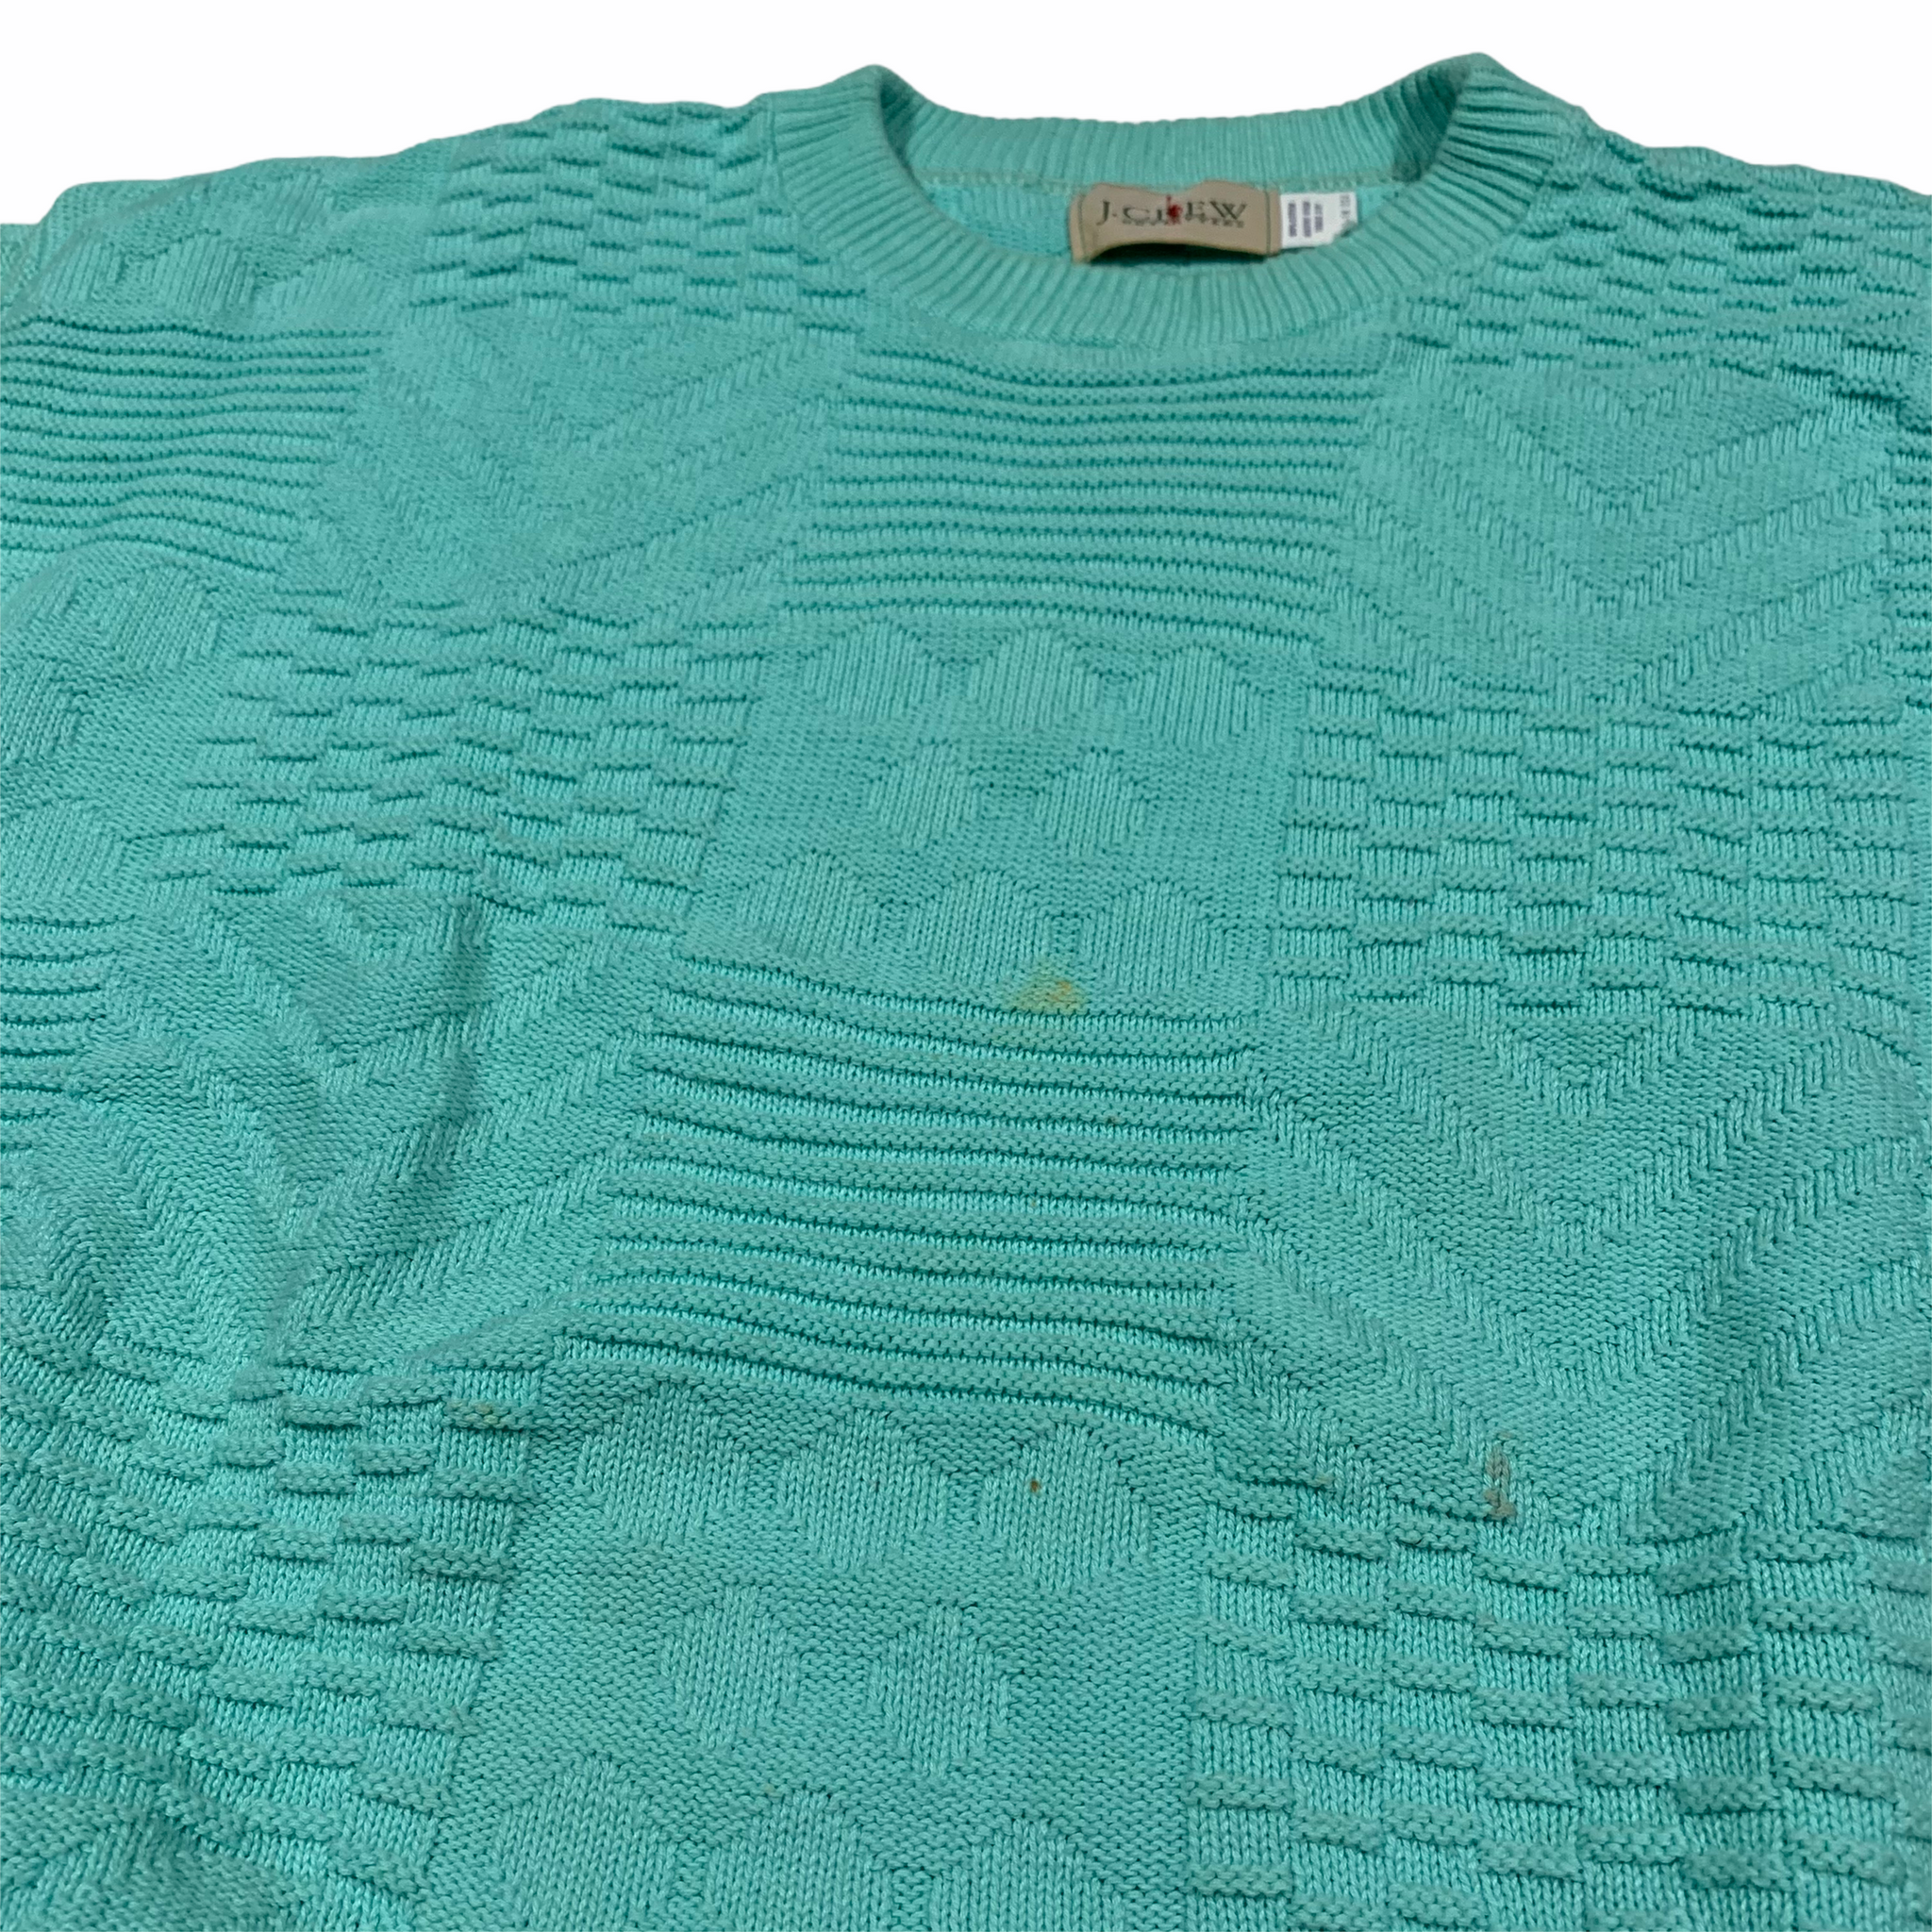 80's/90's J. Crew sweater. Made in USA. L/XL.